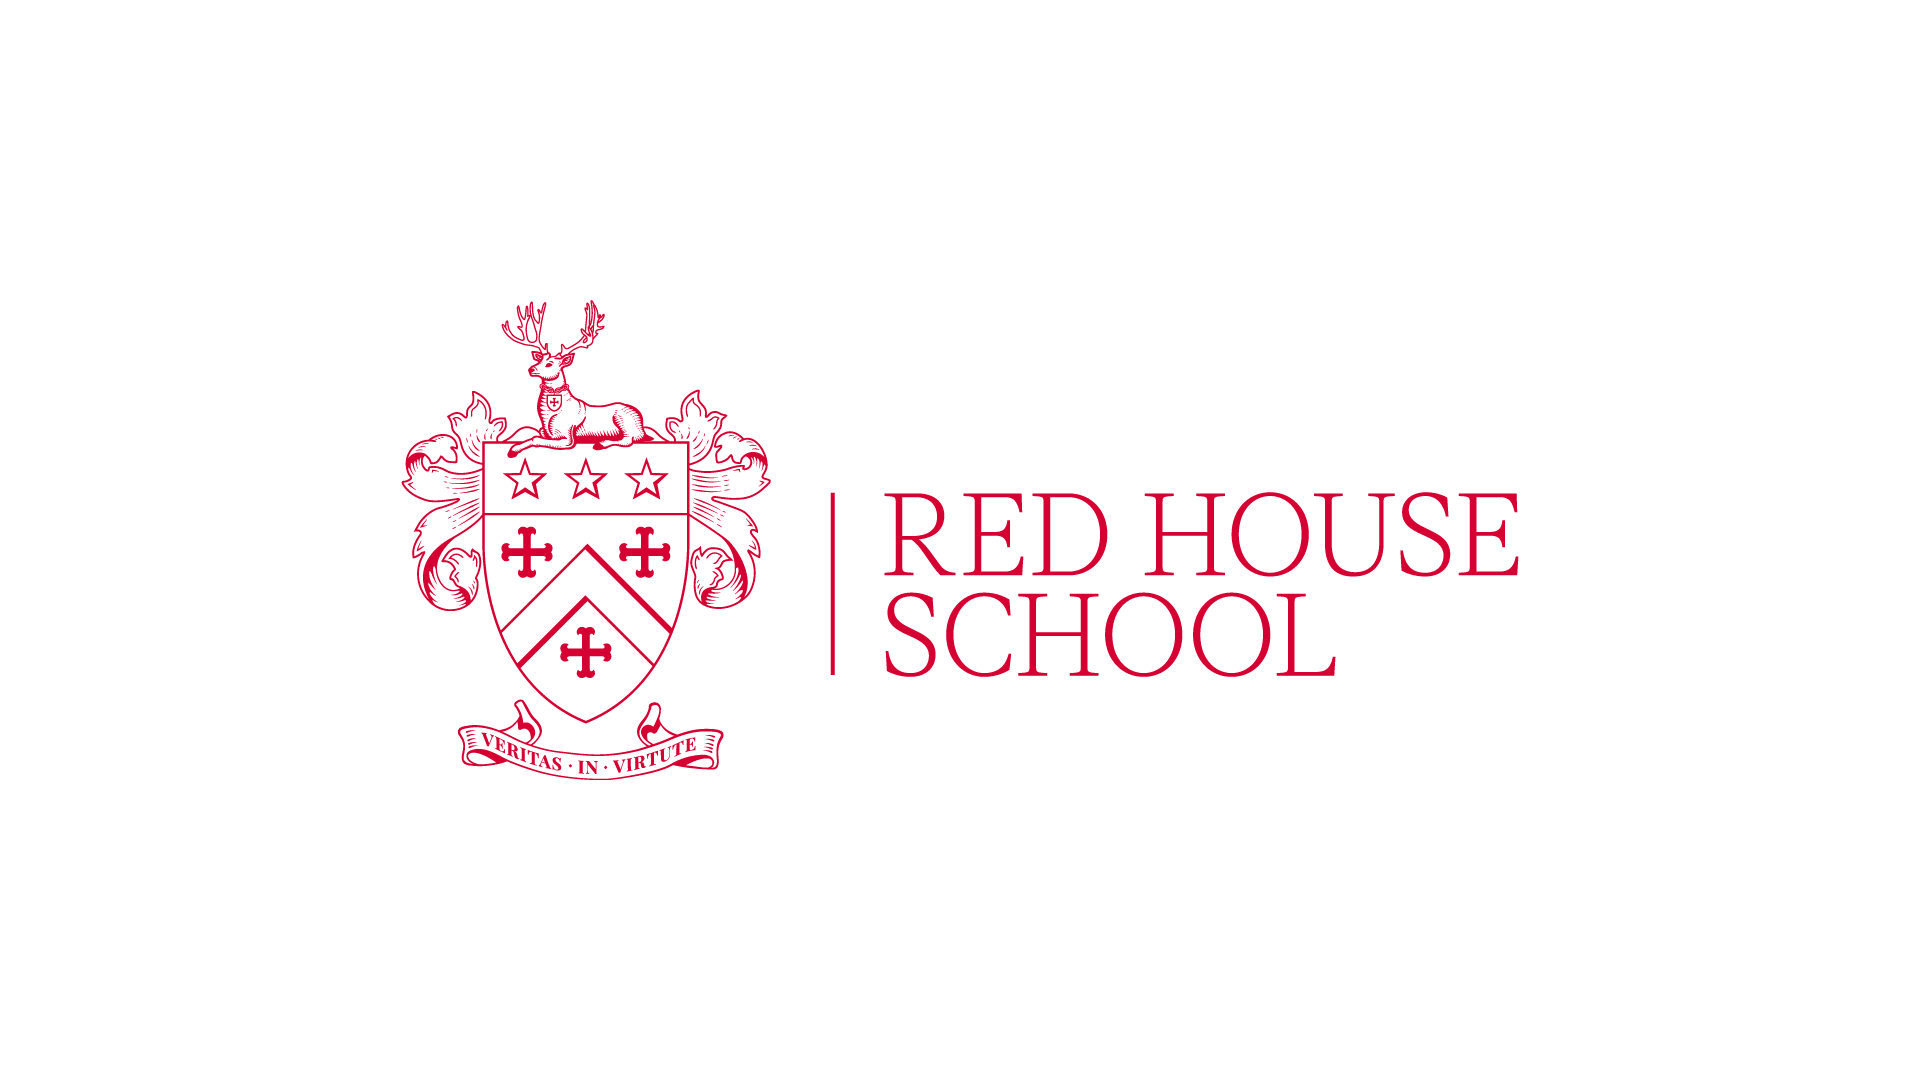 BetterBrandBuilder™ - CREATE Brand Identity Design - Red House School.